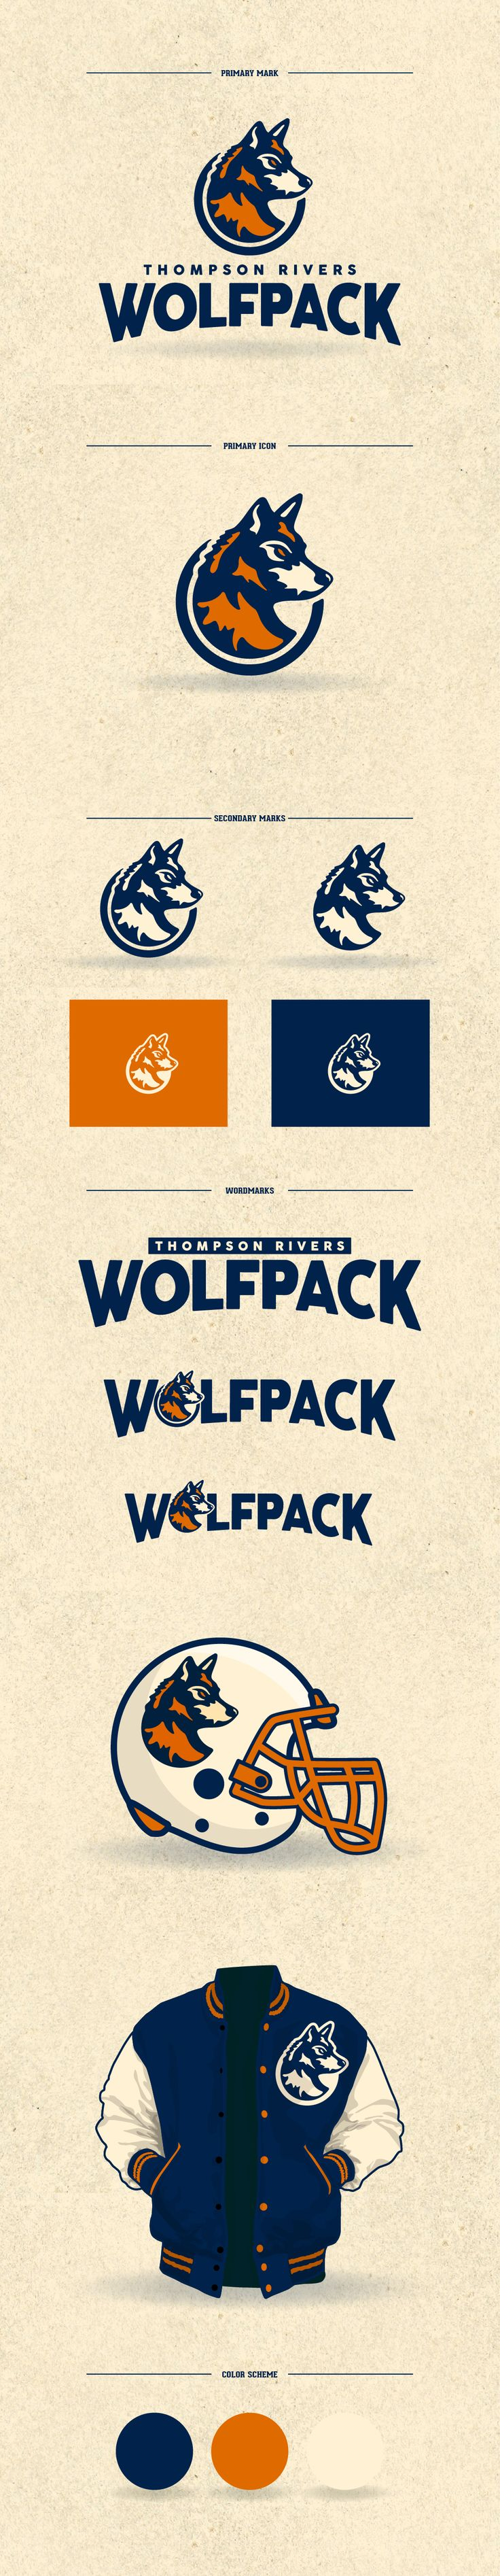 Thompson Rivers Wolfpack on Behance